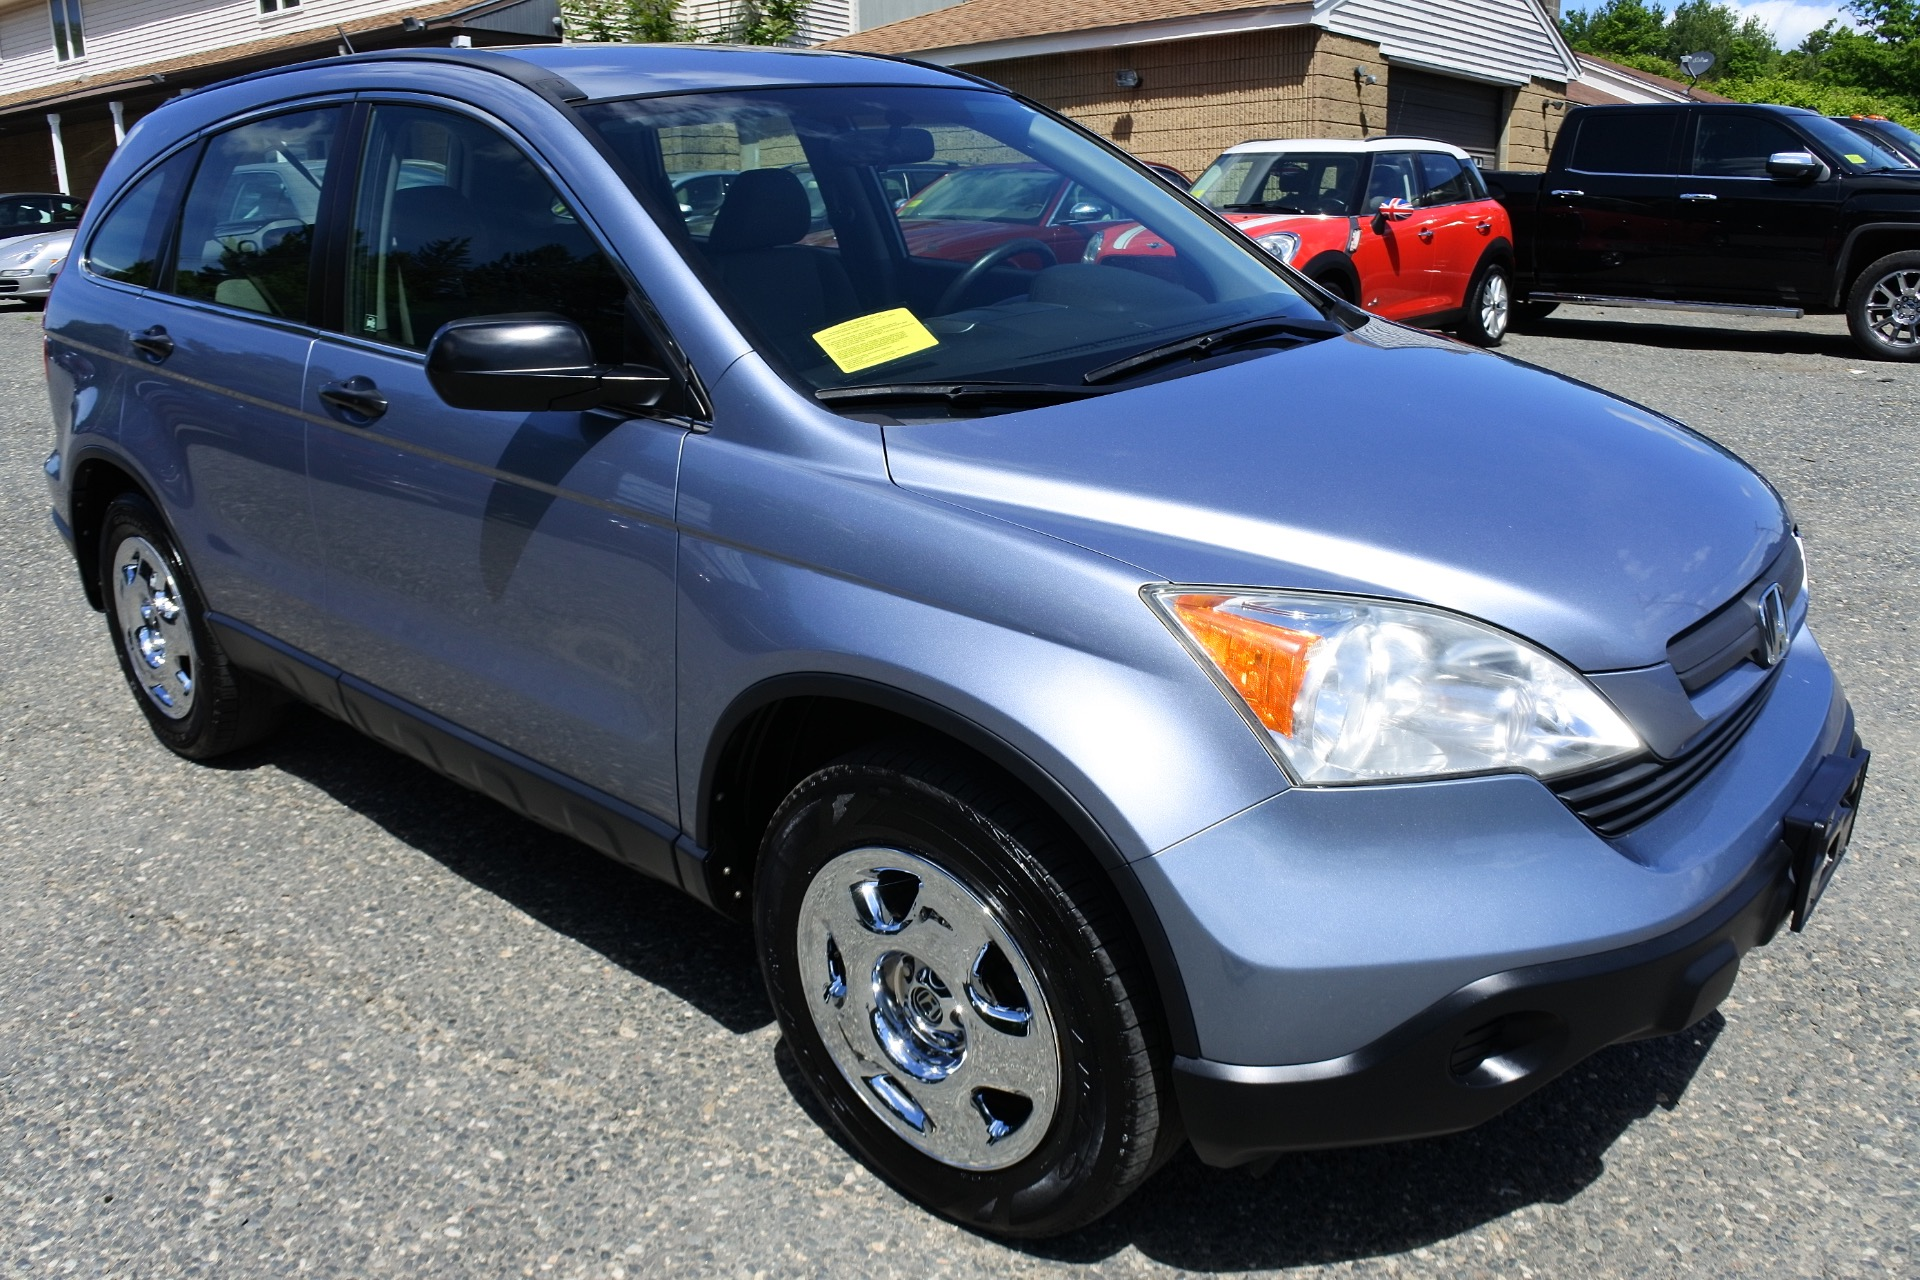 Used 2008 Honda Cr-v 4WD 5dr LX Used 2008 Honda Cr-v 4WD 5dr LX for sale  at Metro West Motorcars LLC in Shrewsbury MA 7